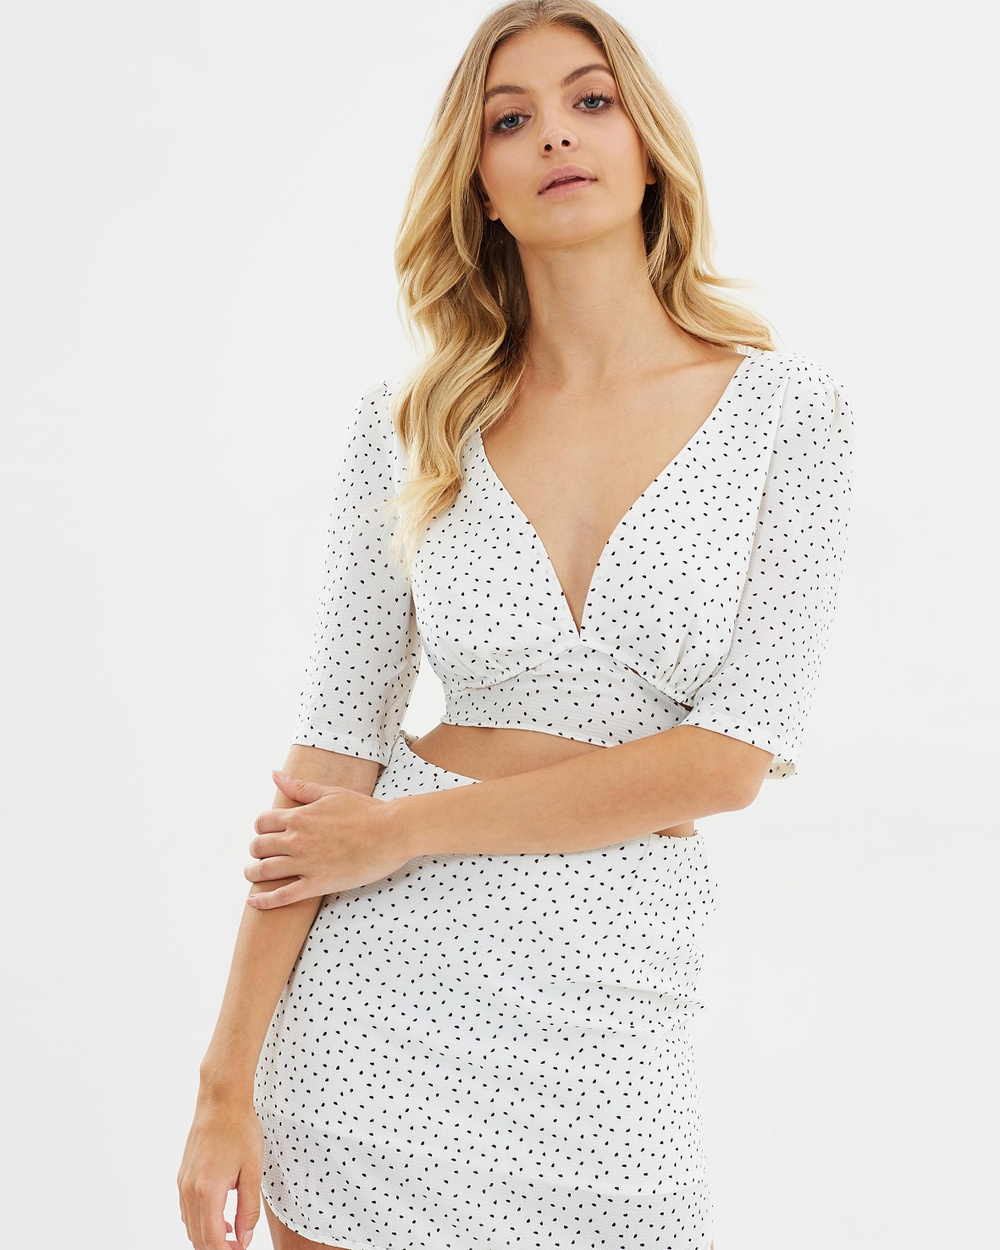 Toby Heart Ginger Spot On Top Cropped tops White/Black Spot Spot On Top